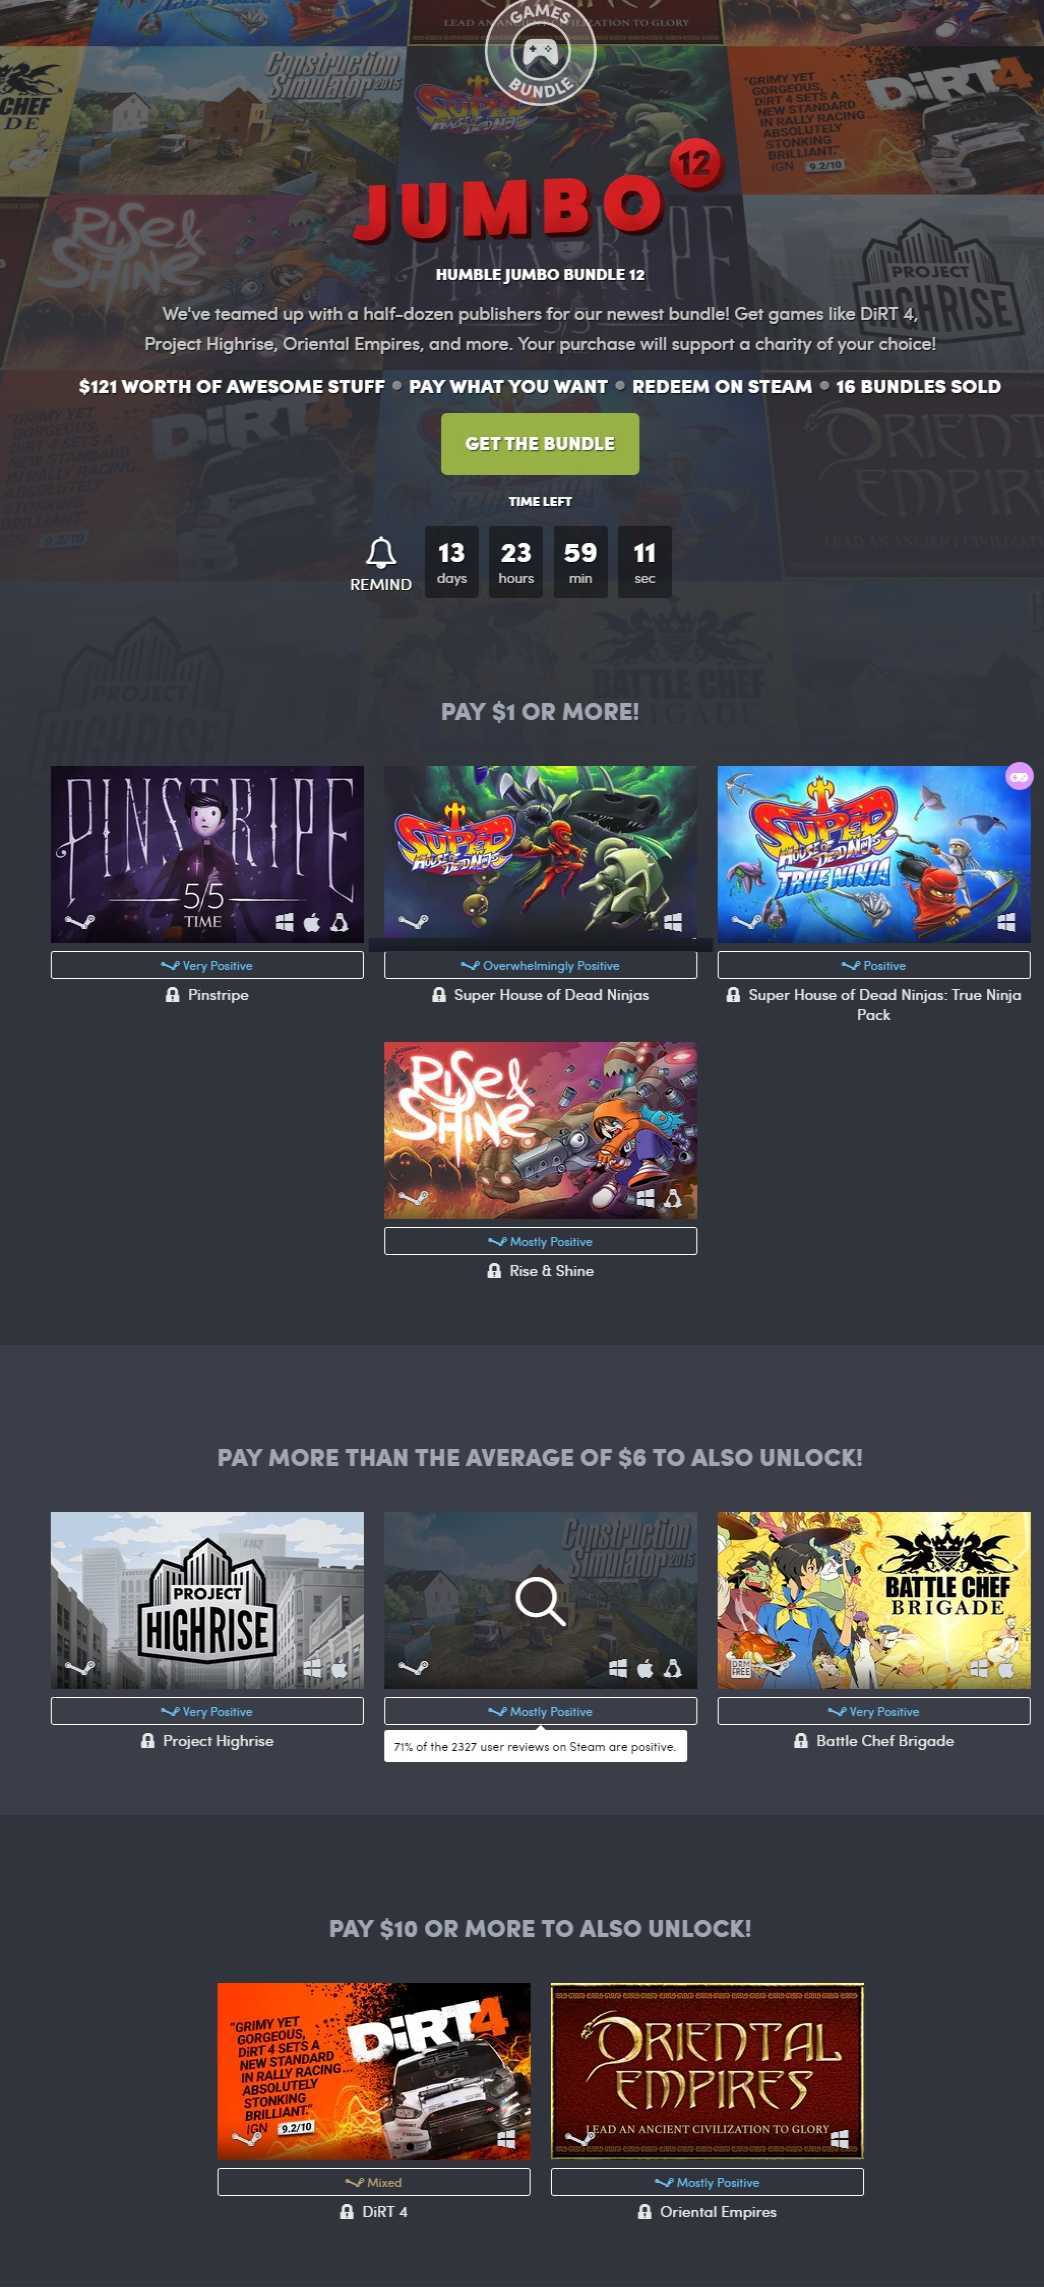 screenshot-www.humblebundle.com-2018.11.21-04-00-50.jpg